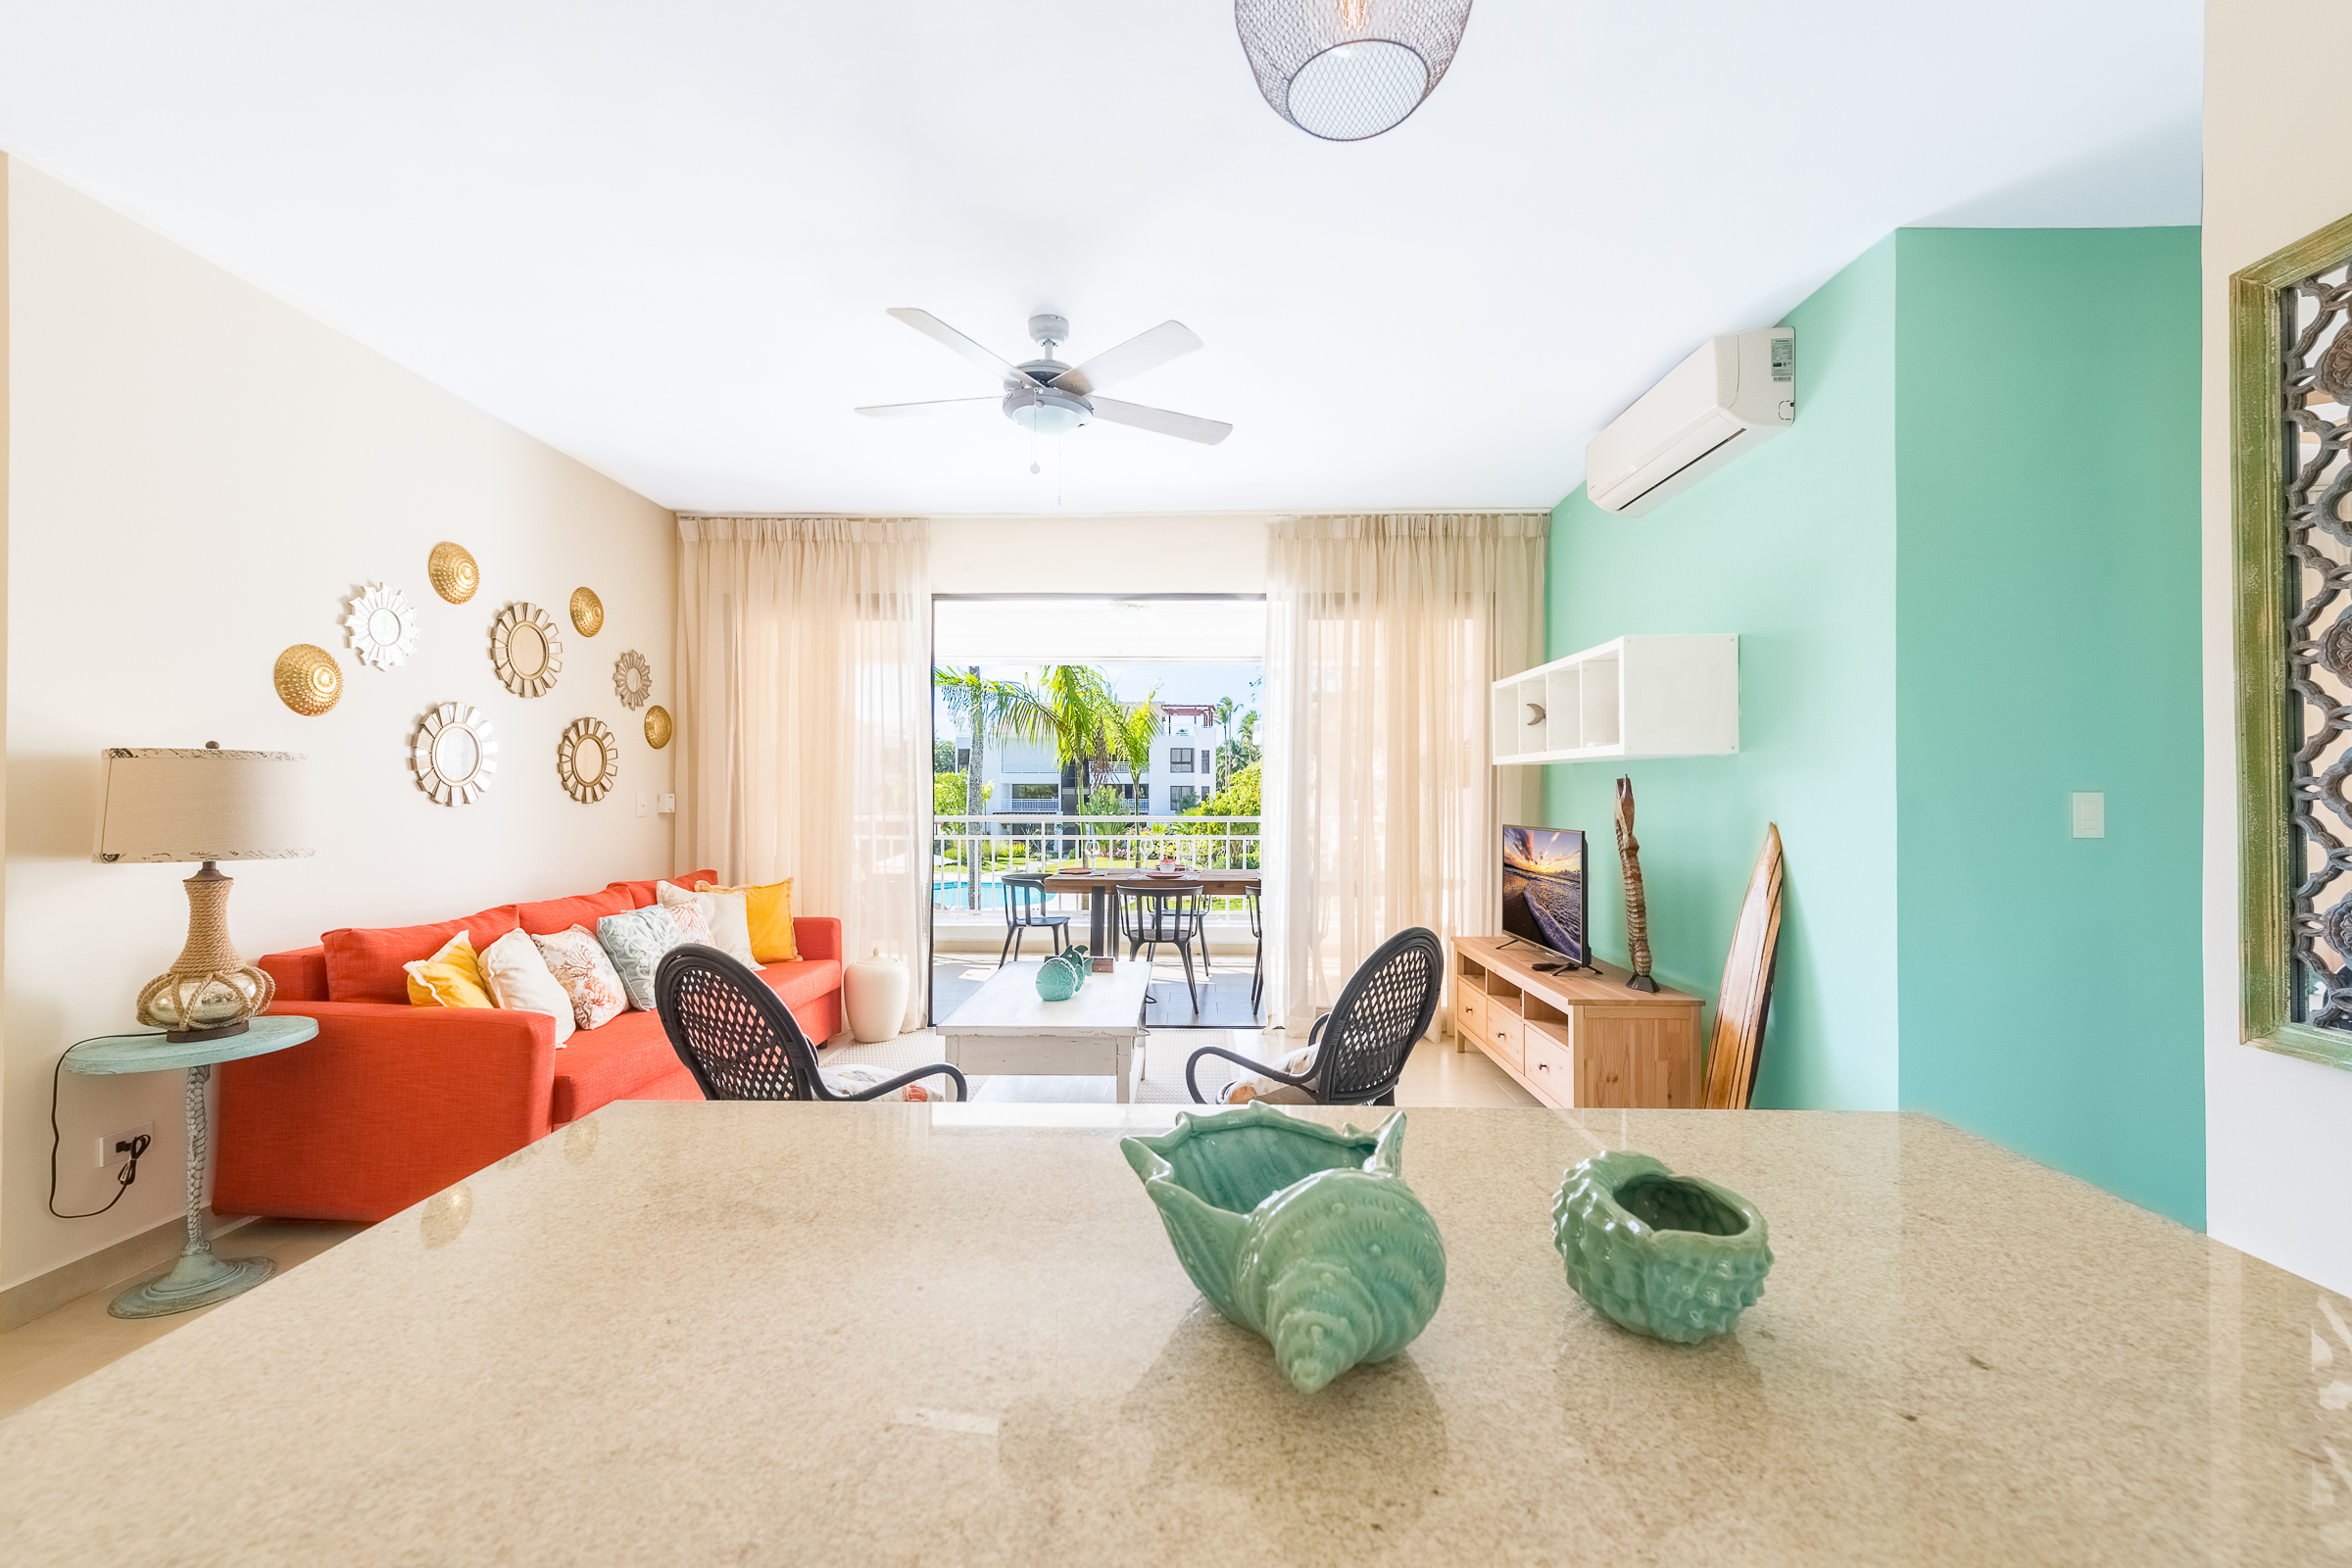 RENTAL : The Seahorse, 2BR Los Cocos at Playa Bonita